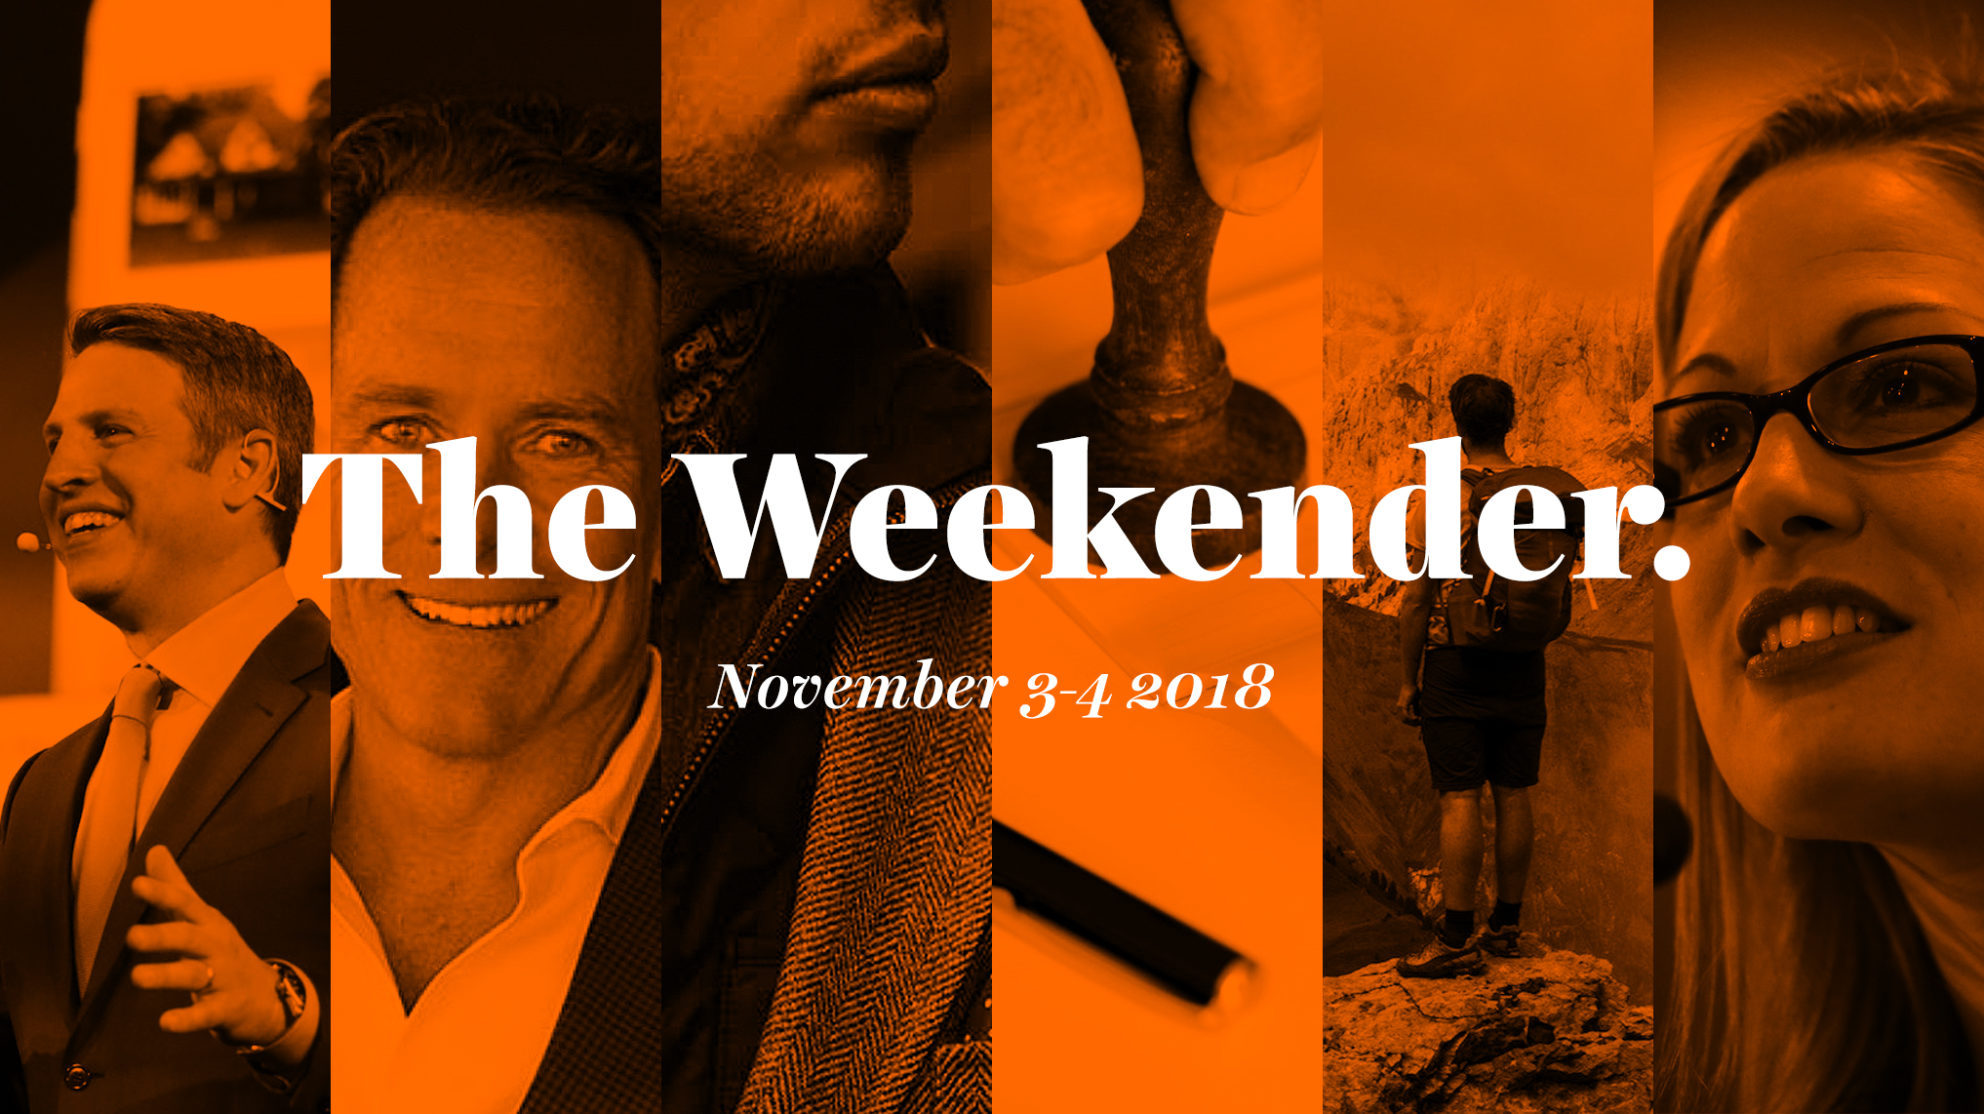 The Inman Weekender, November 3-4, 2018